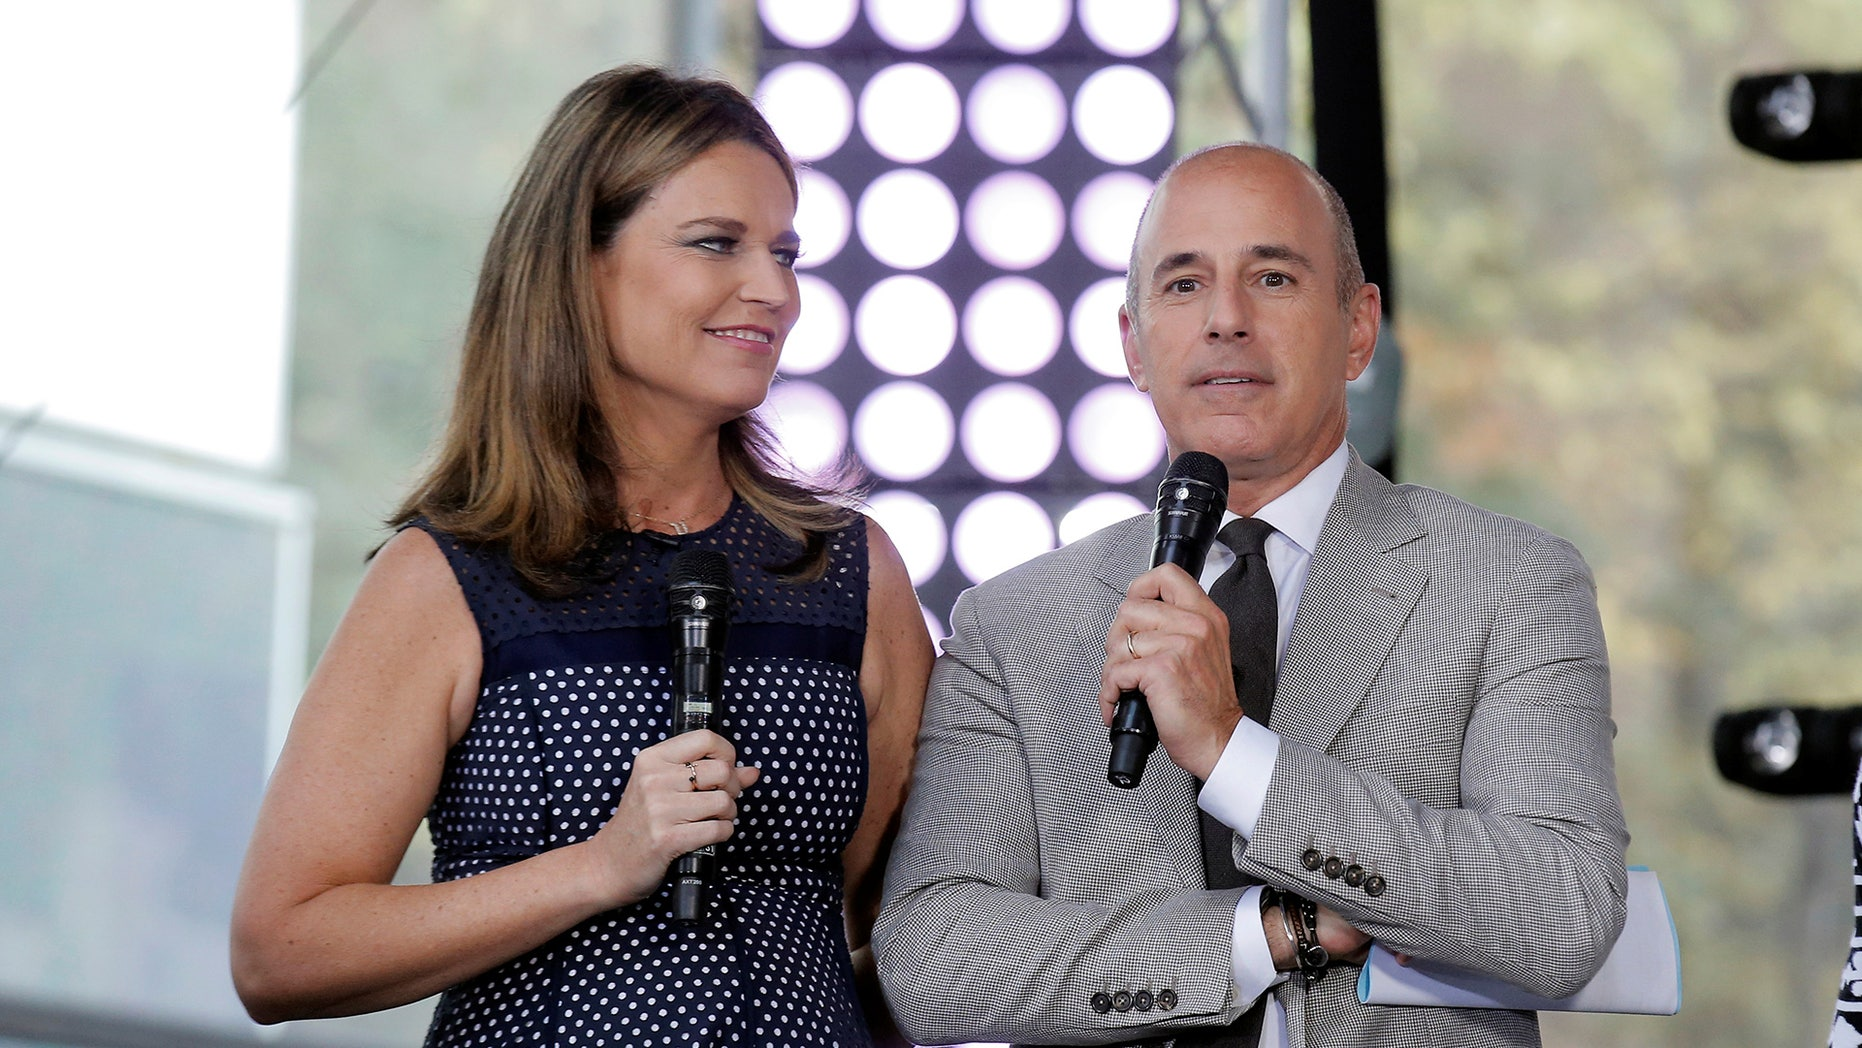 Savannah Guthrie and Matt Lauer in August 2016.